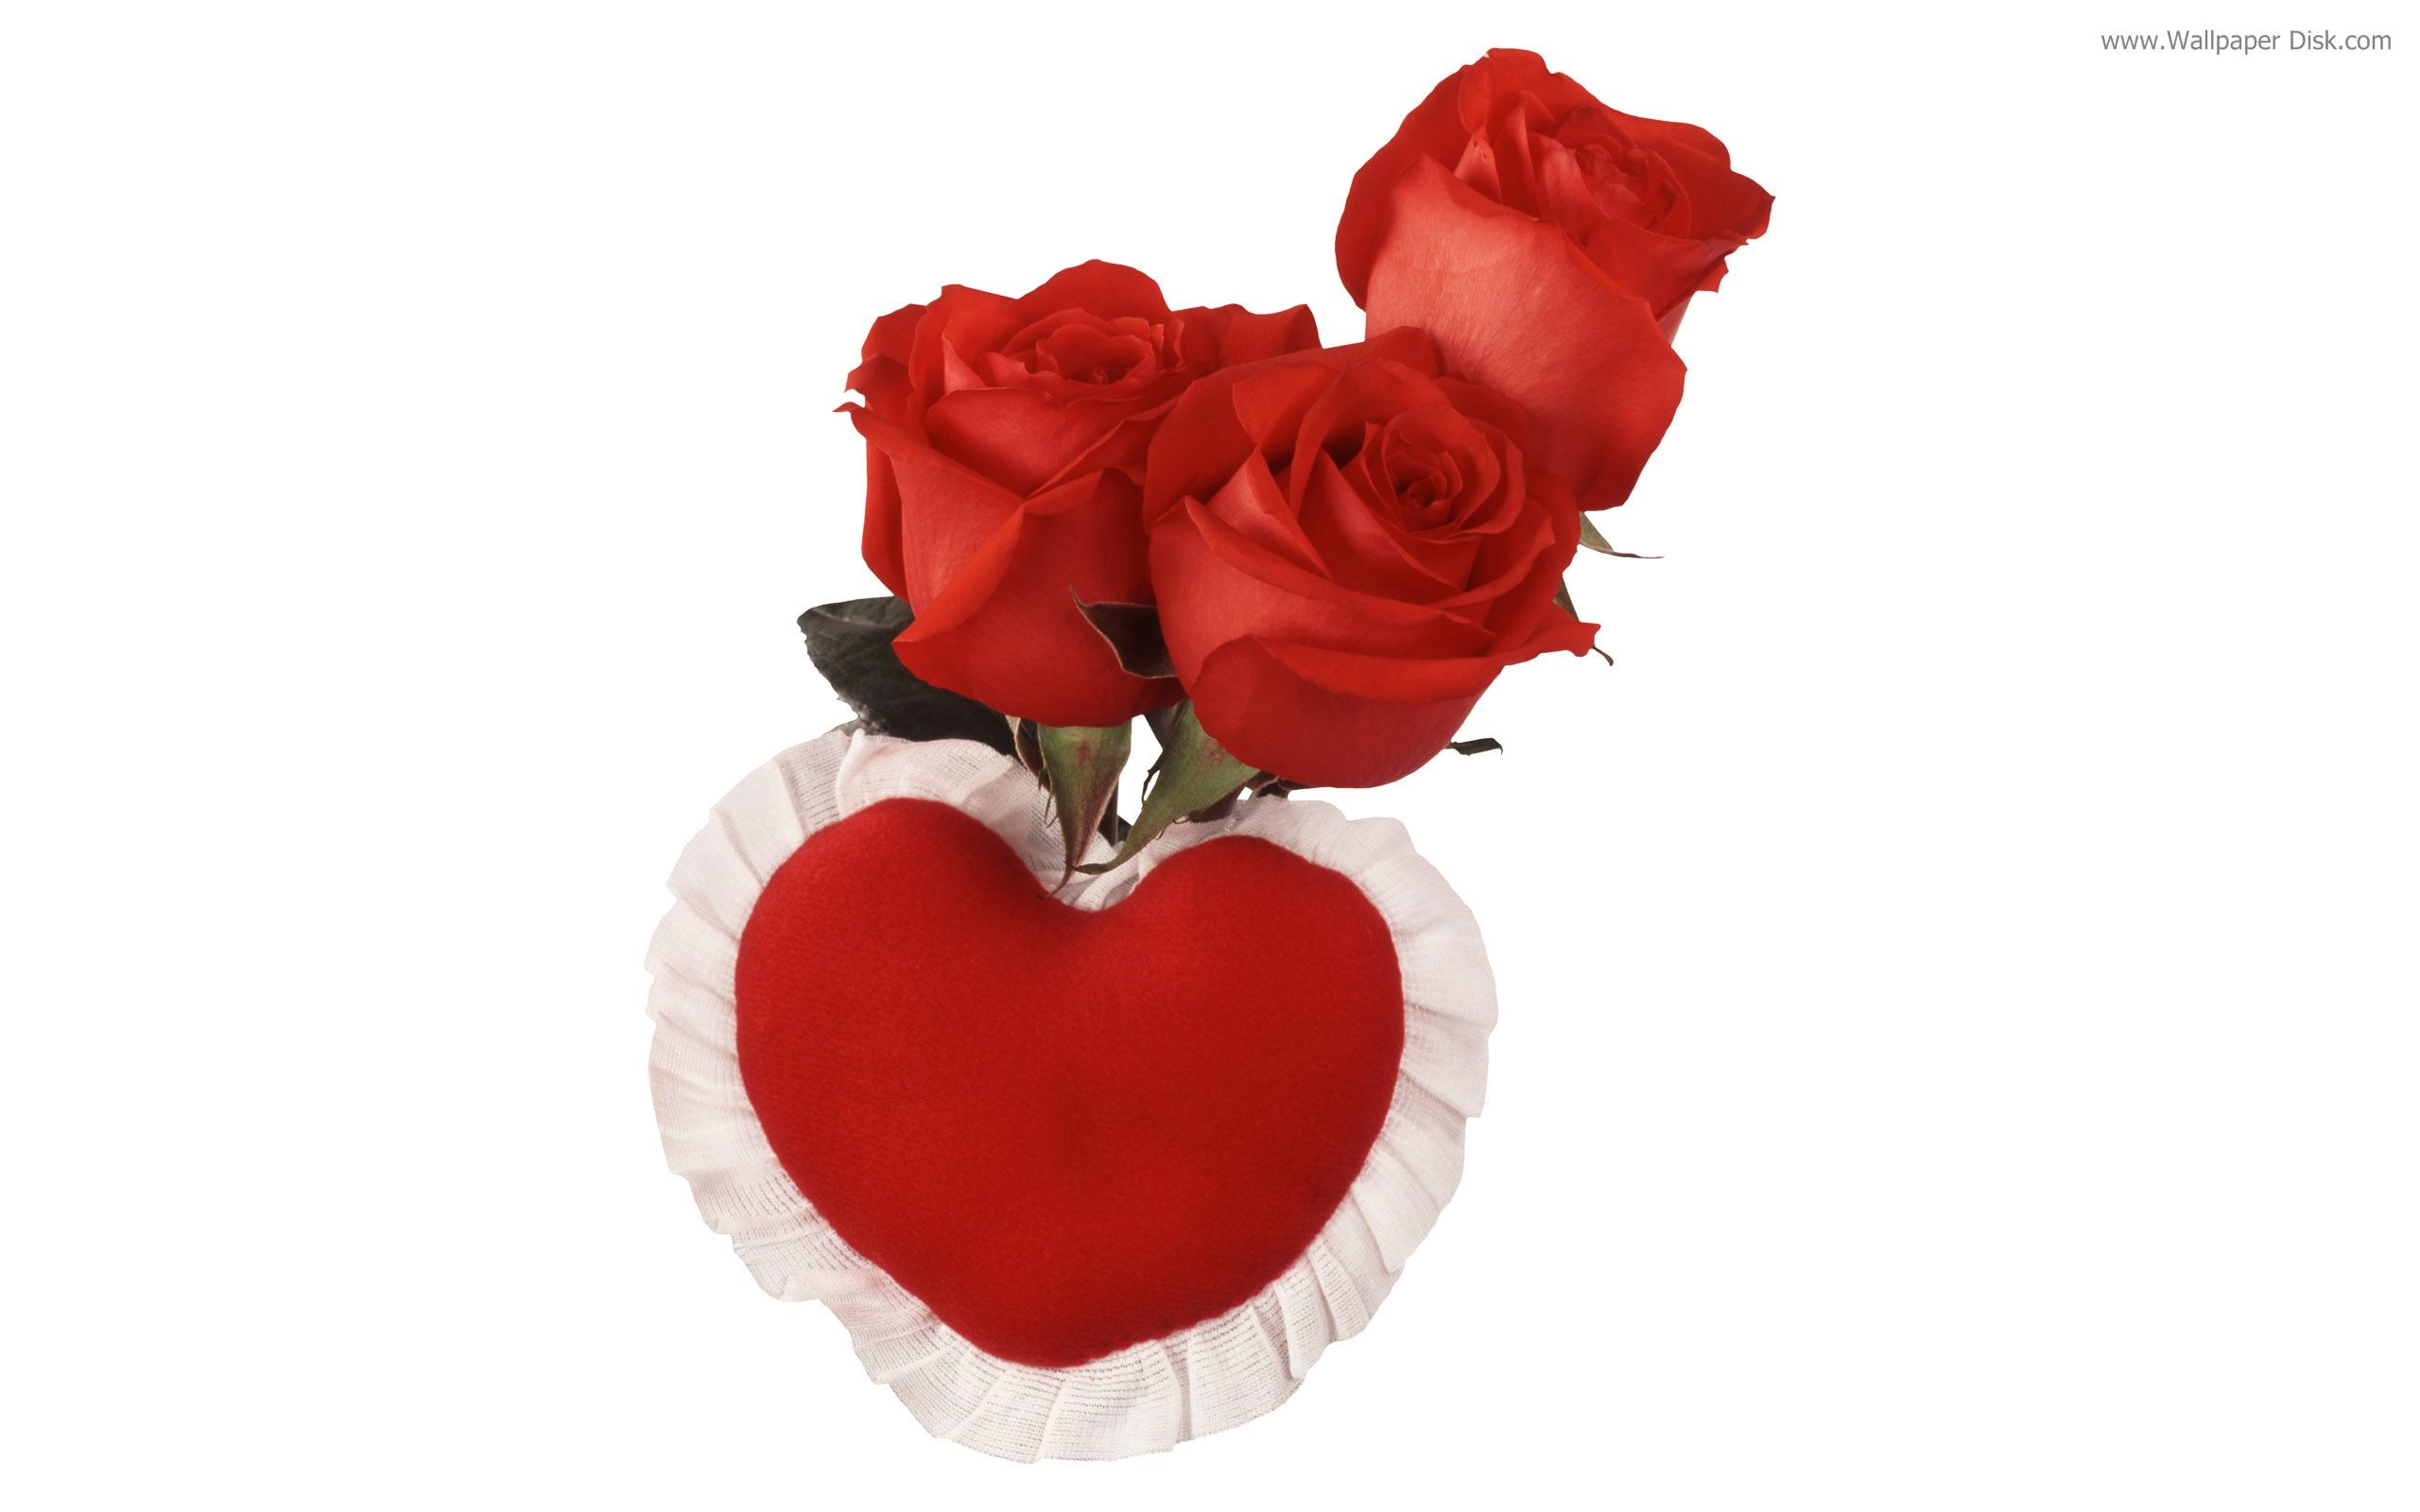 Red Rose Live Wallpaper Android Apps On Google Play - Beautiful Rose For Rose Day - HD Wallpaper